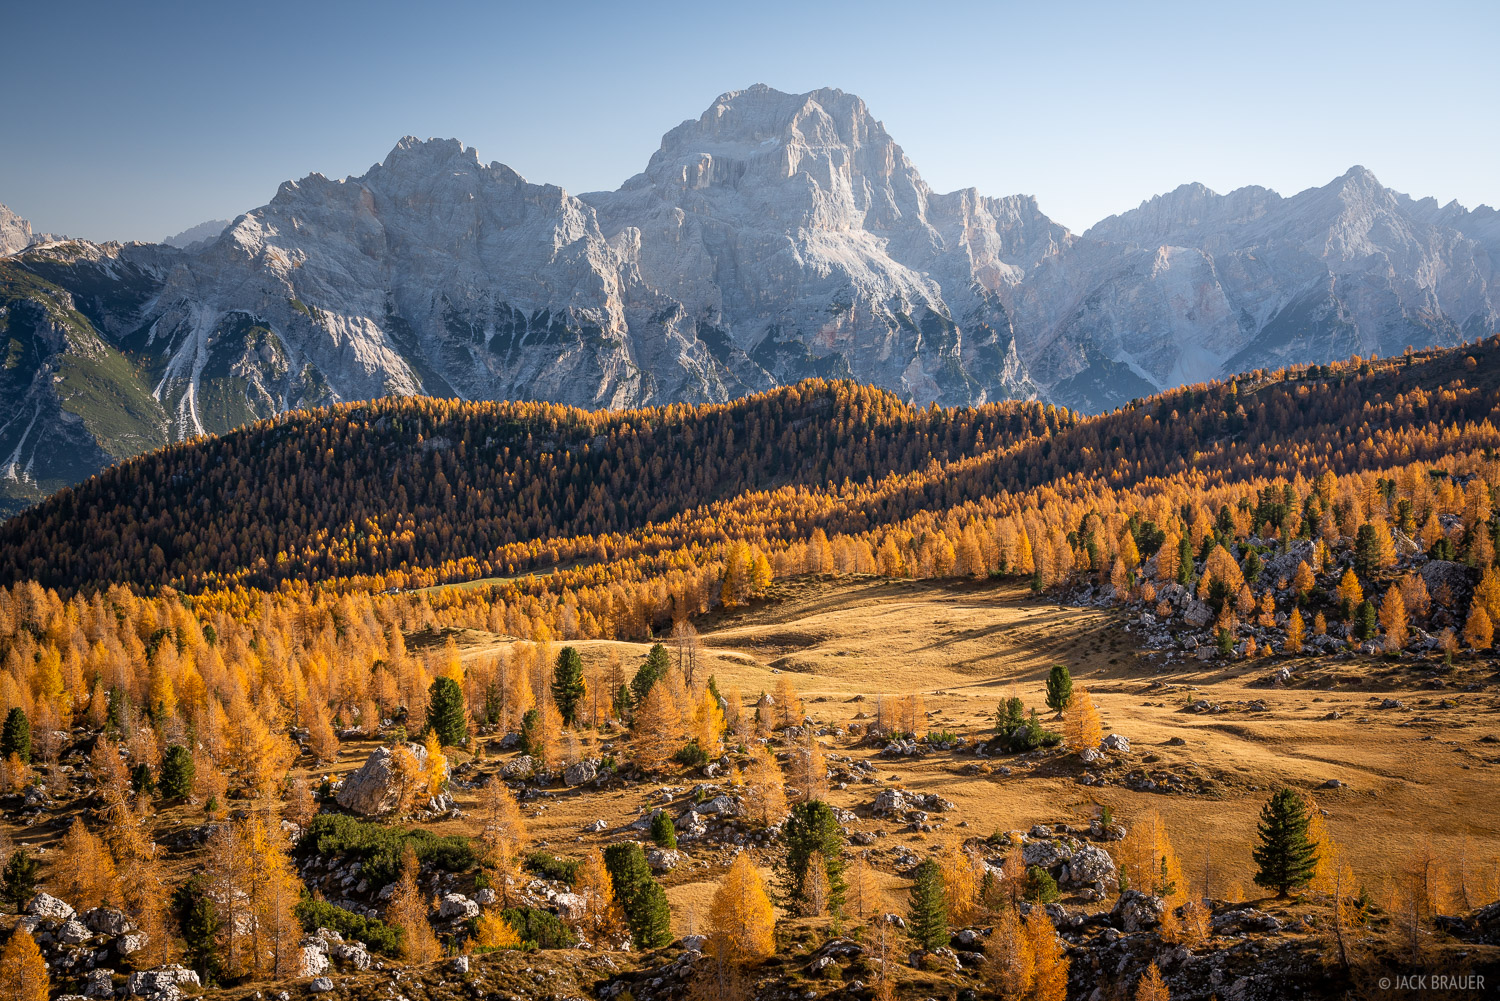 Dolomites, Gruppo del Sorapis, Italy, larch, October, Alps, photo